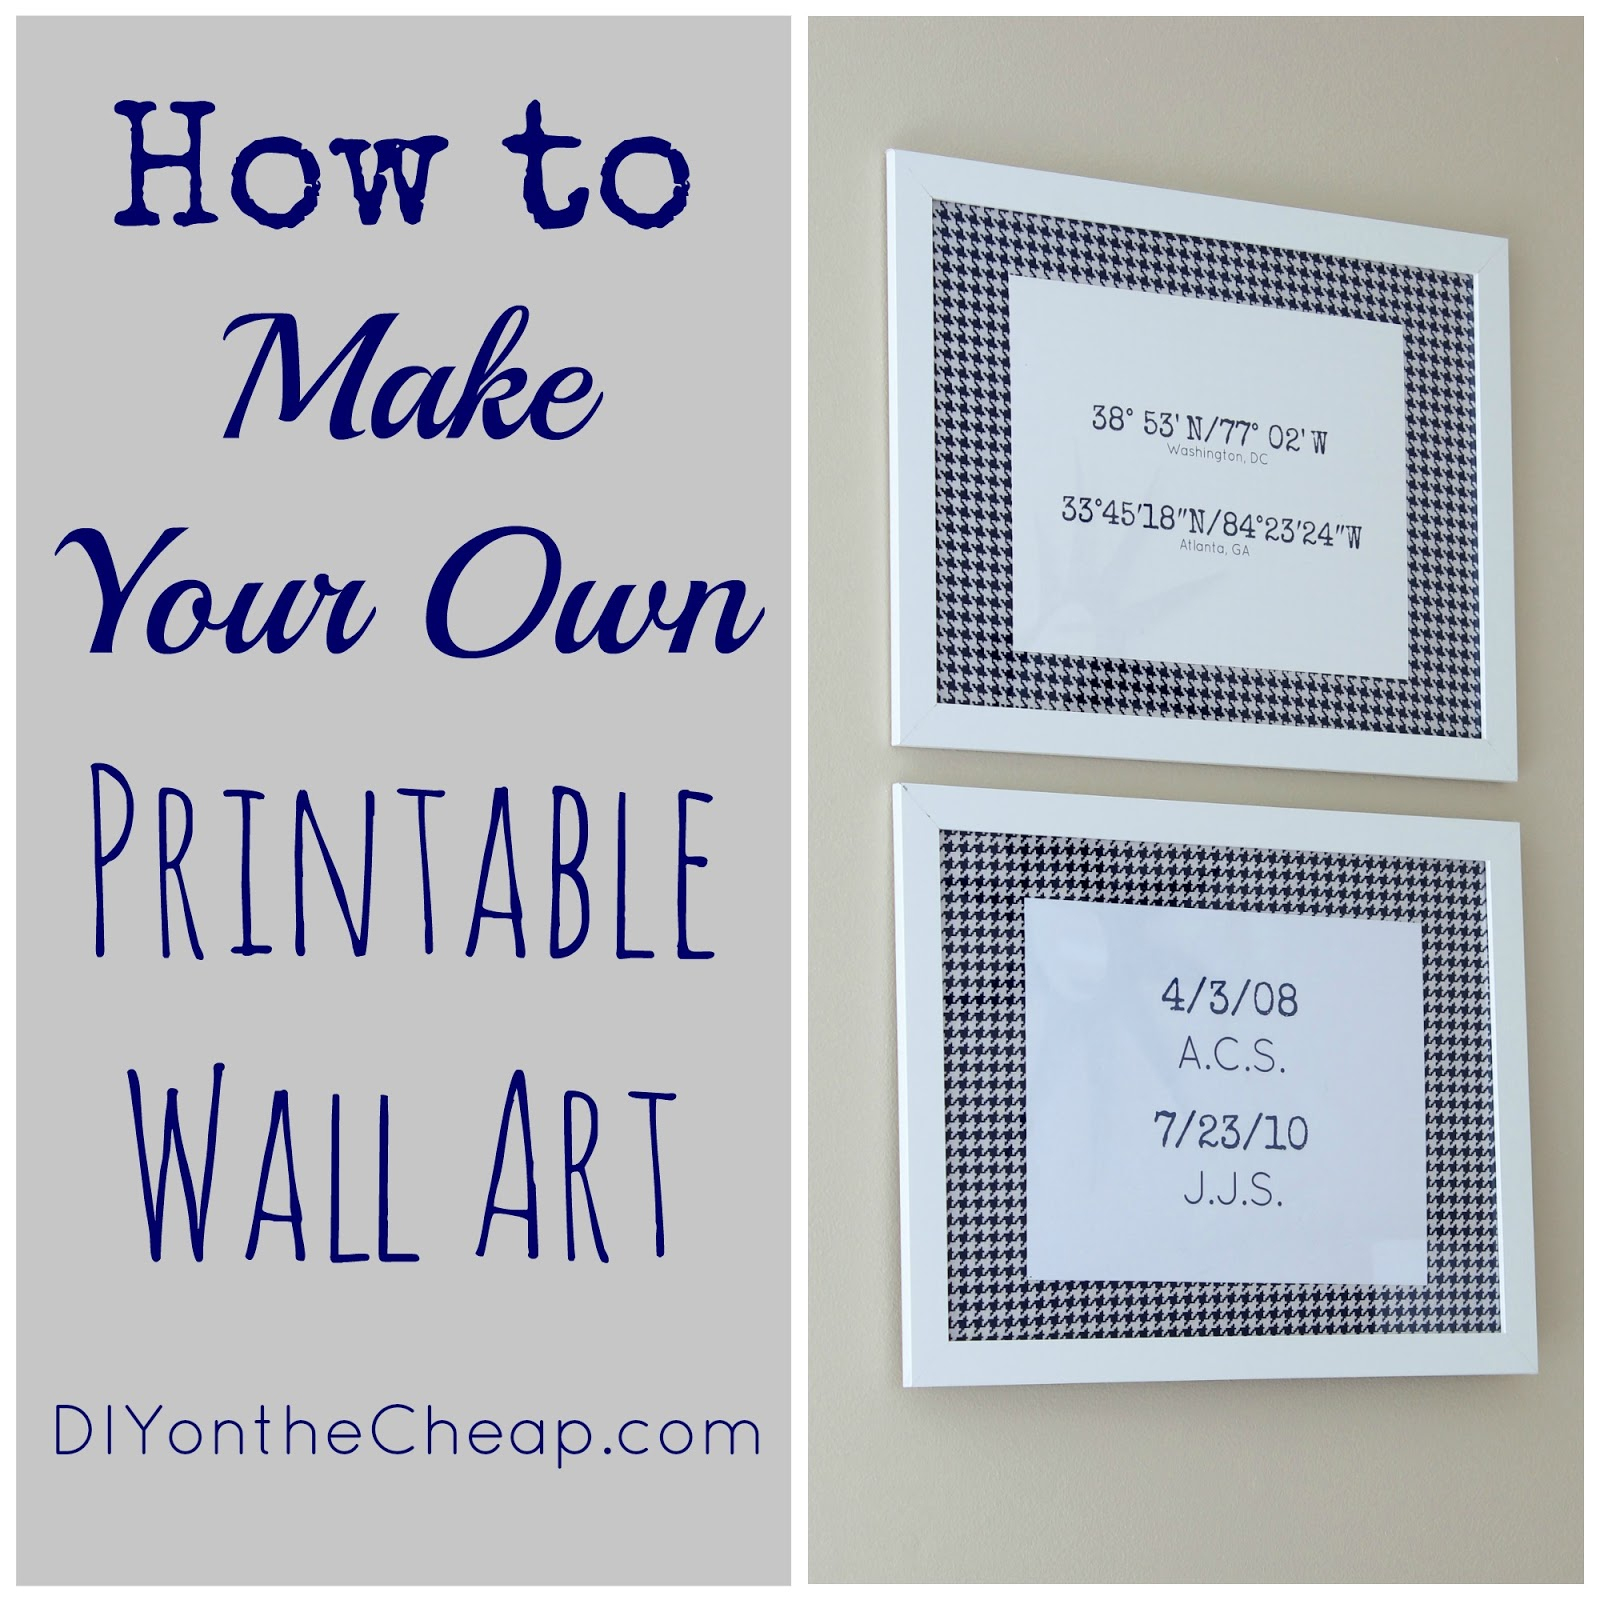 How To Make Your Own Printable Wall Art - Erin Spain - Make Your Own Tickets Free Printable